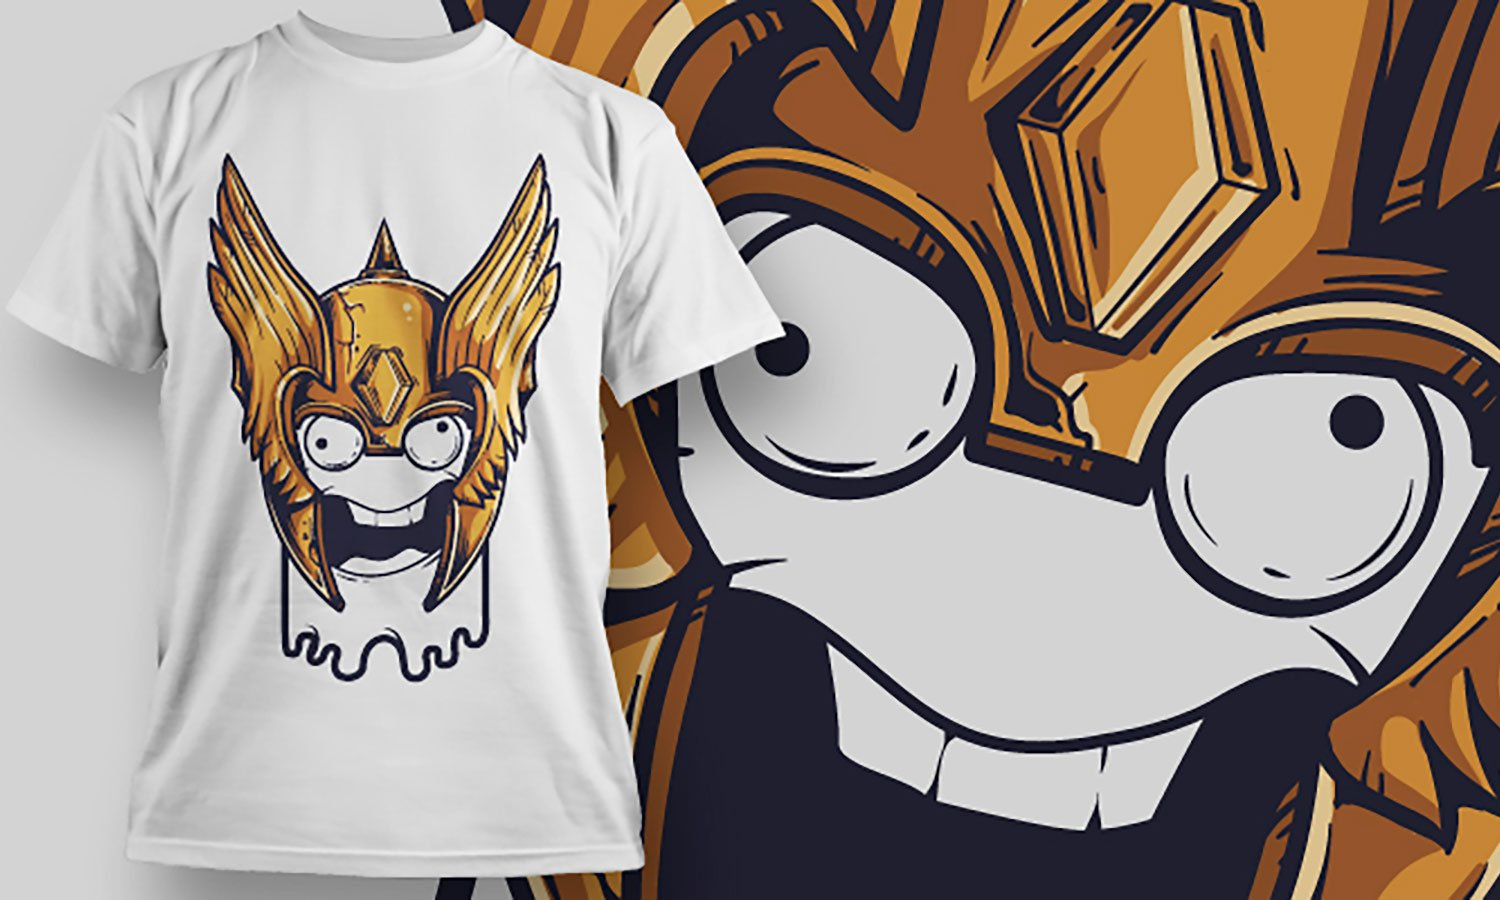 King Head - Printed T-Shirt for Men, Women and Kids - TS030